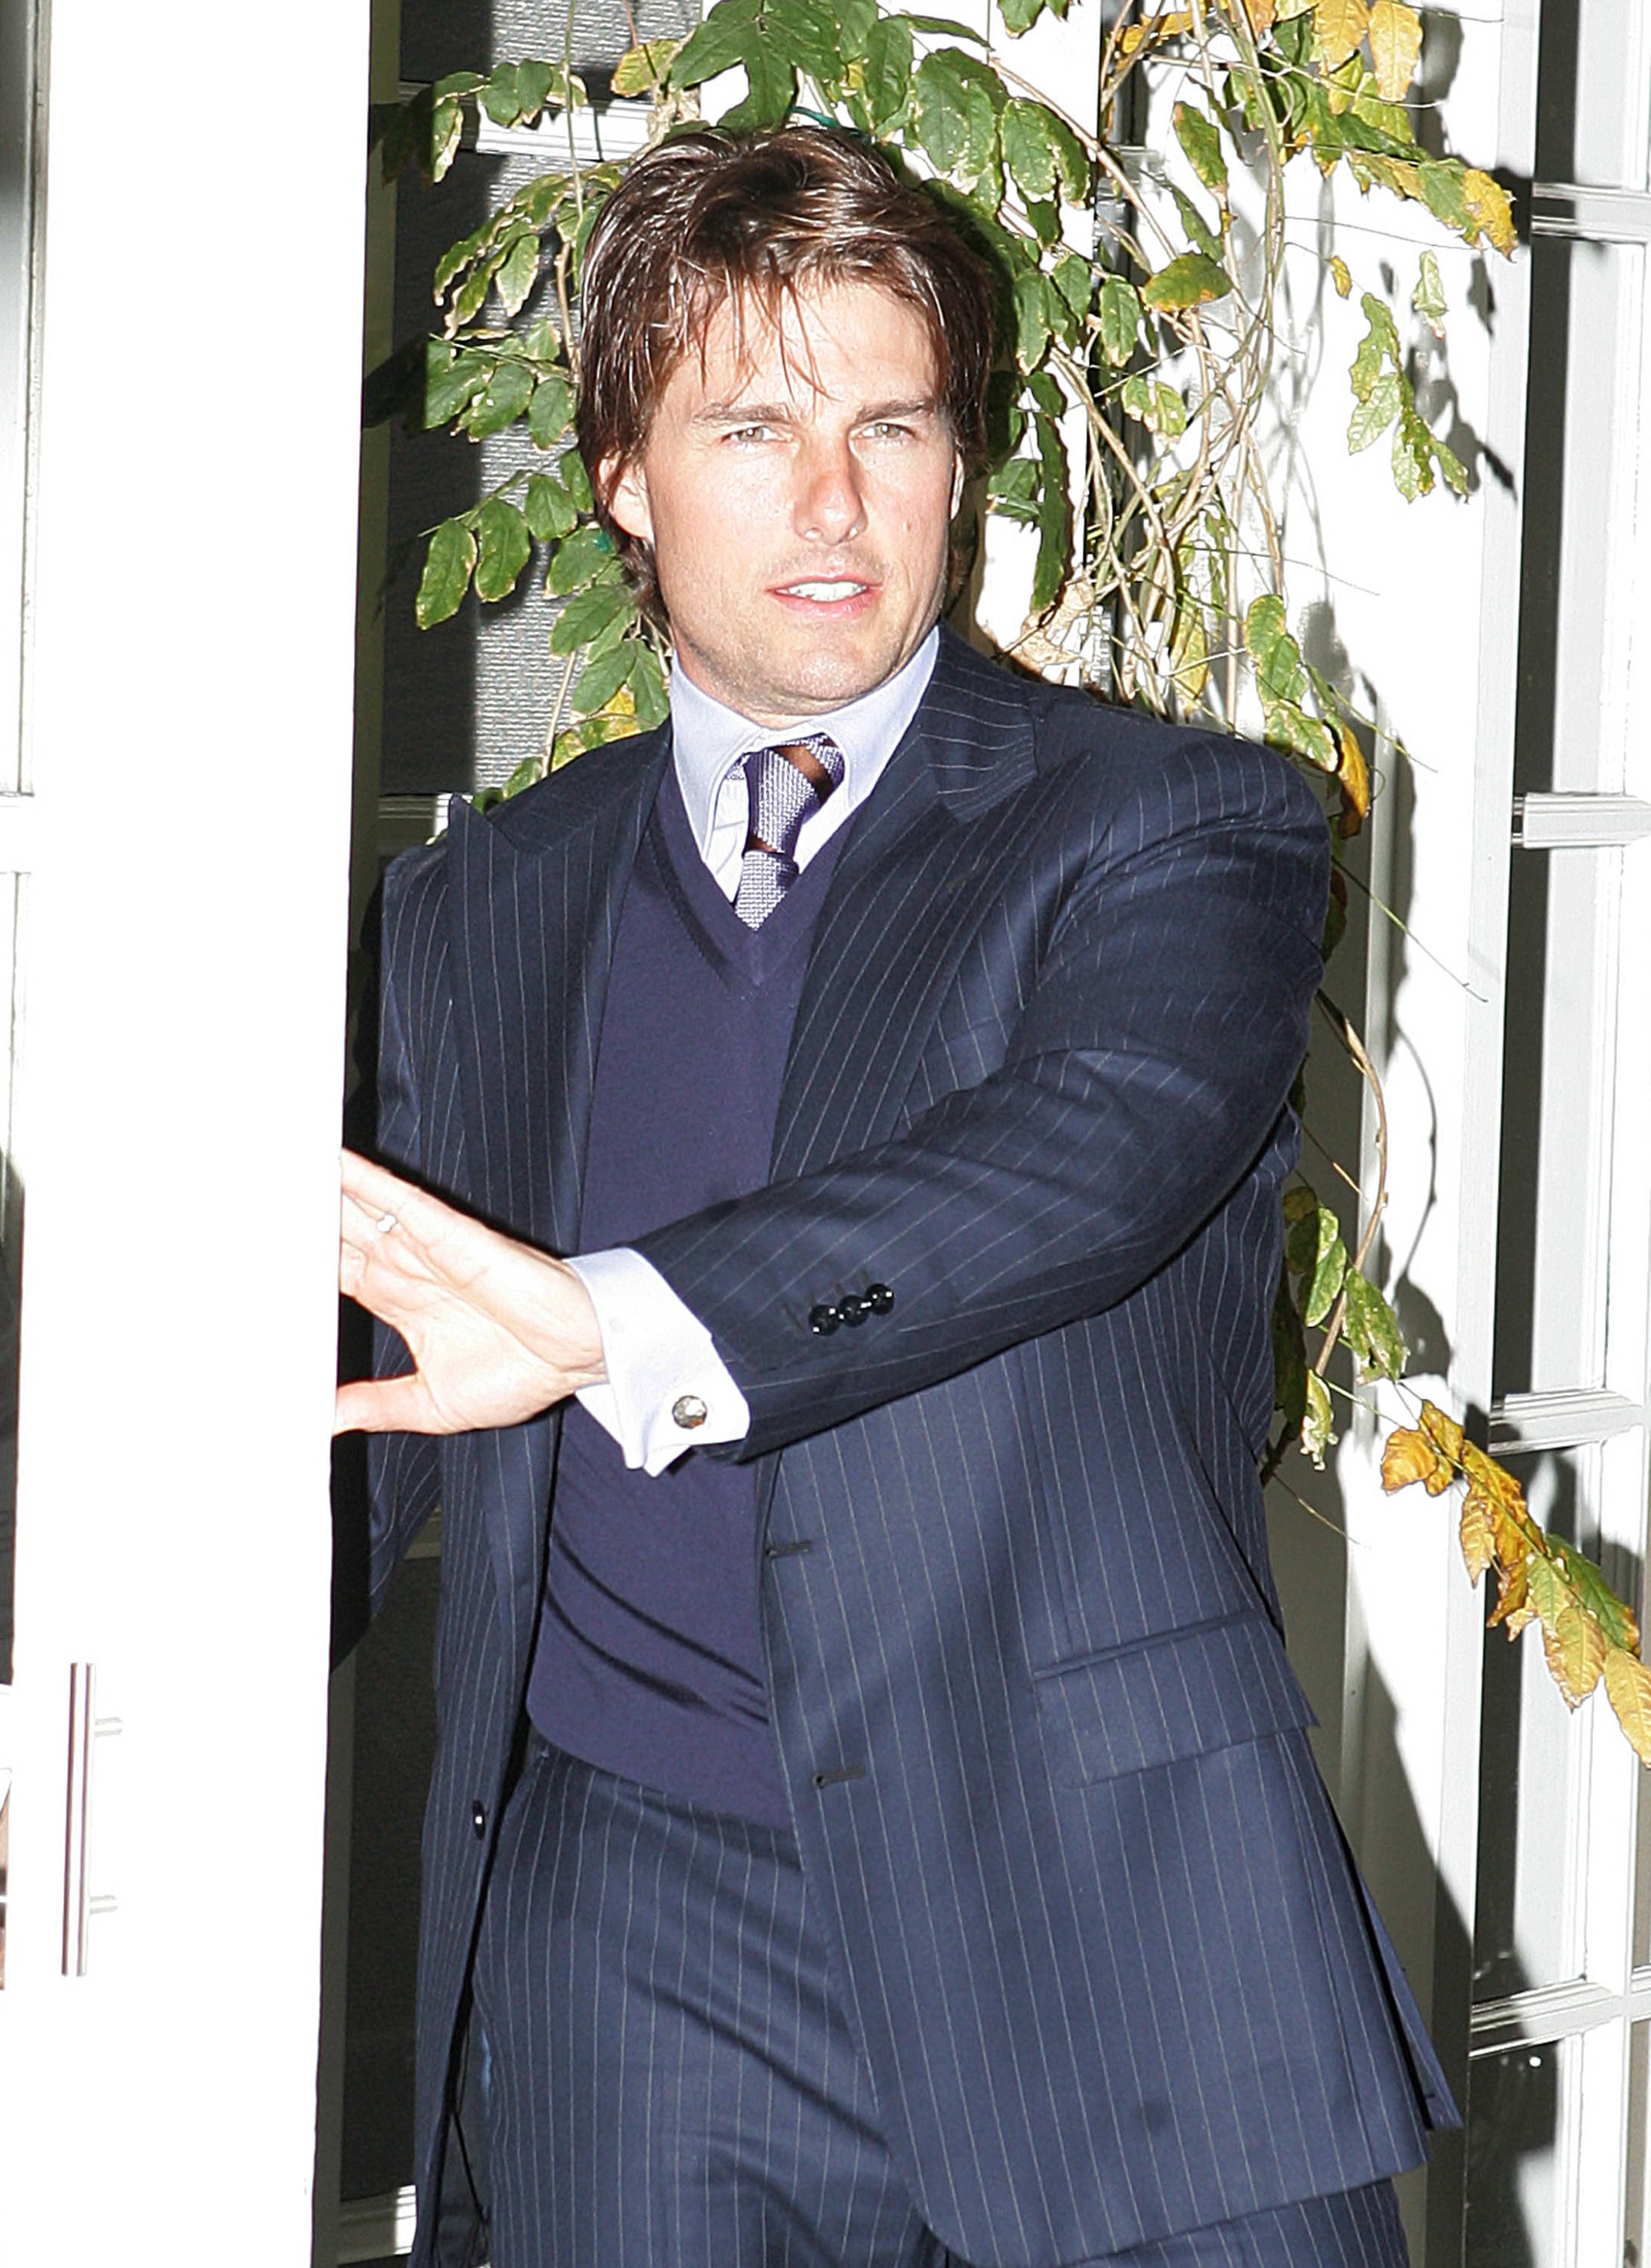 Tom Cruise got dressed up for dinner out in LA with Jennifer Lopez, Marc Anthony, and Victoria Beckham in December 2006.